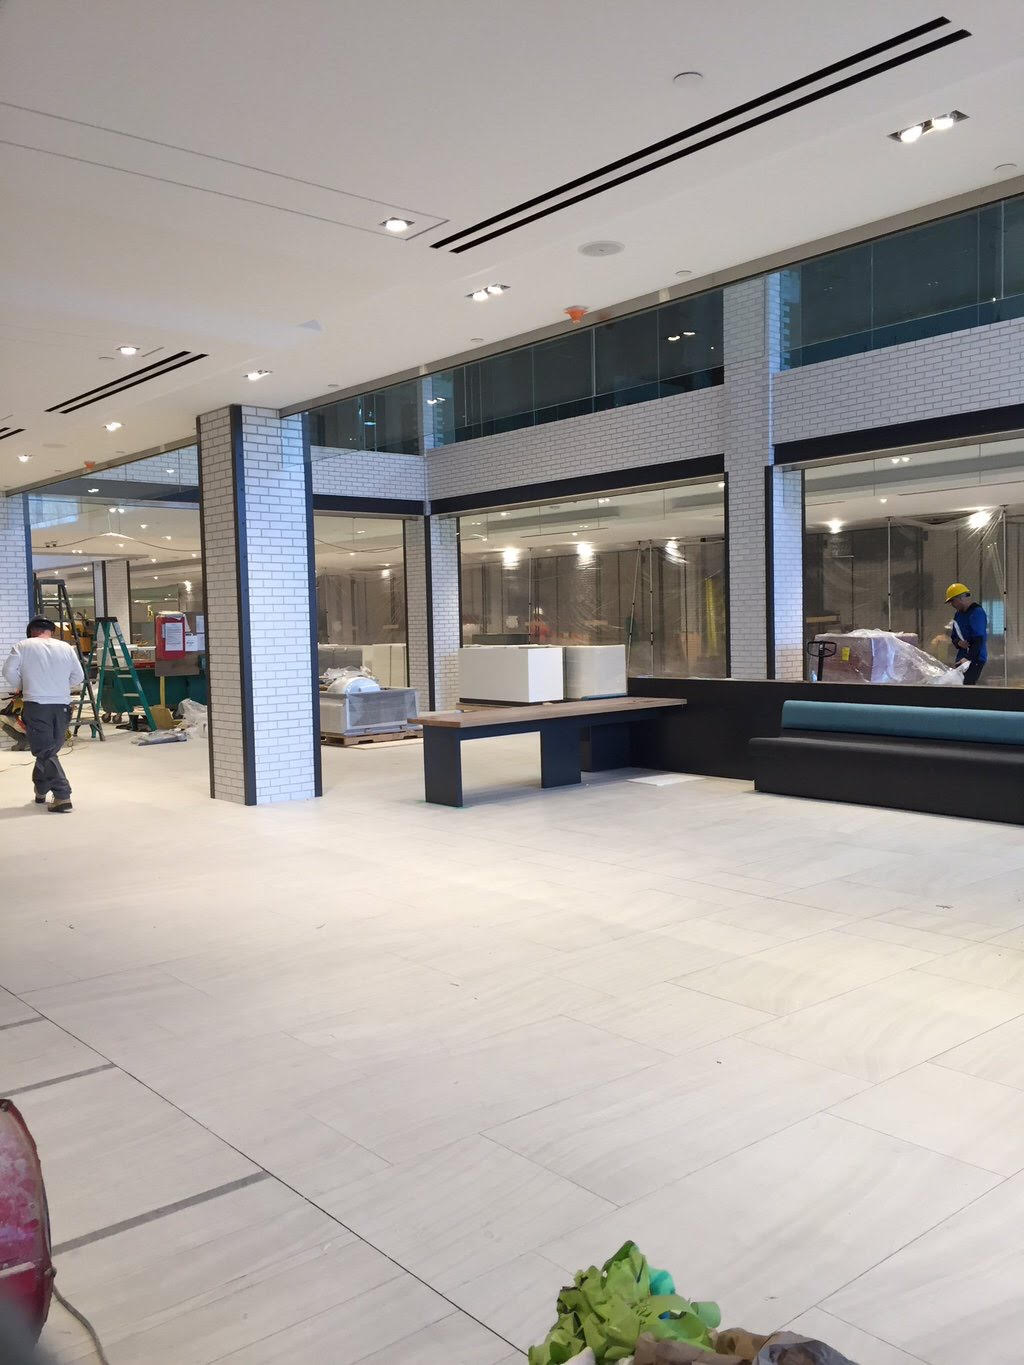 Terrace: New HSC Food Court Opens May 4